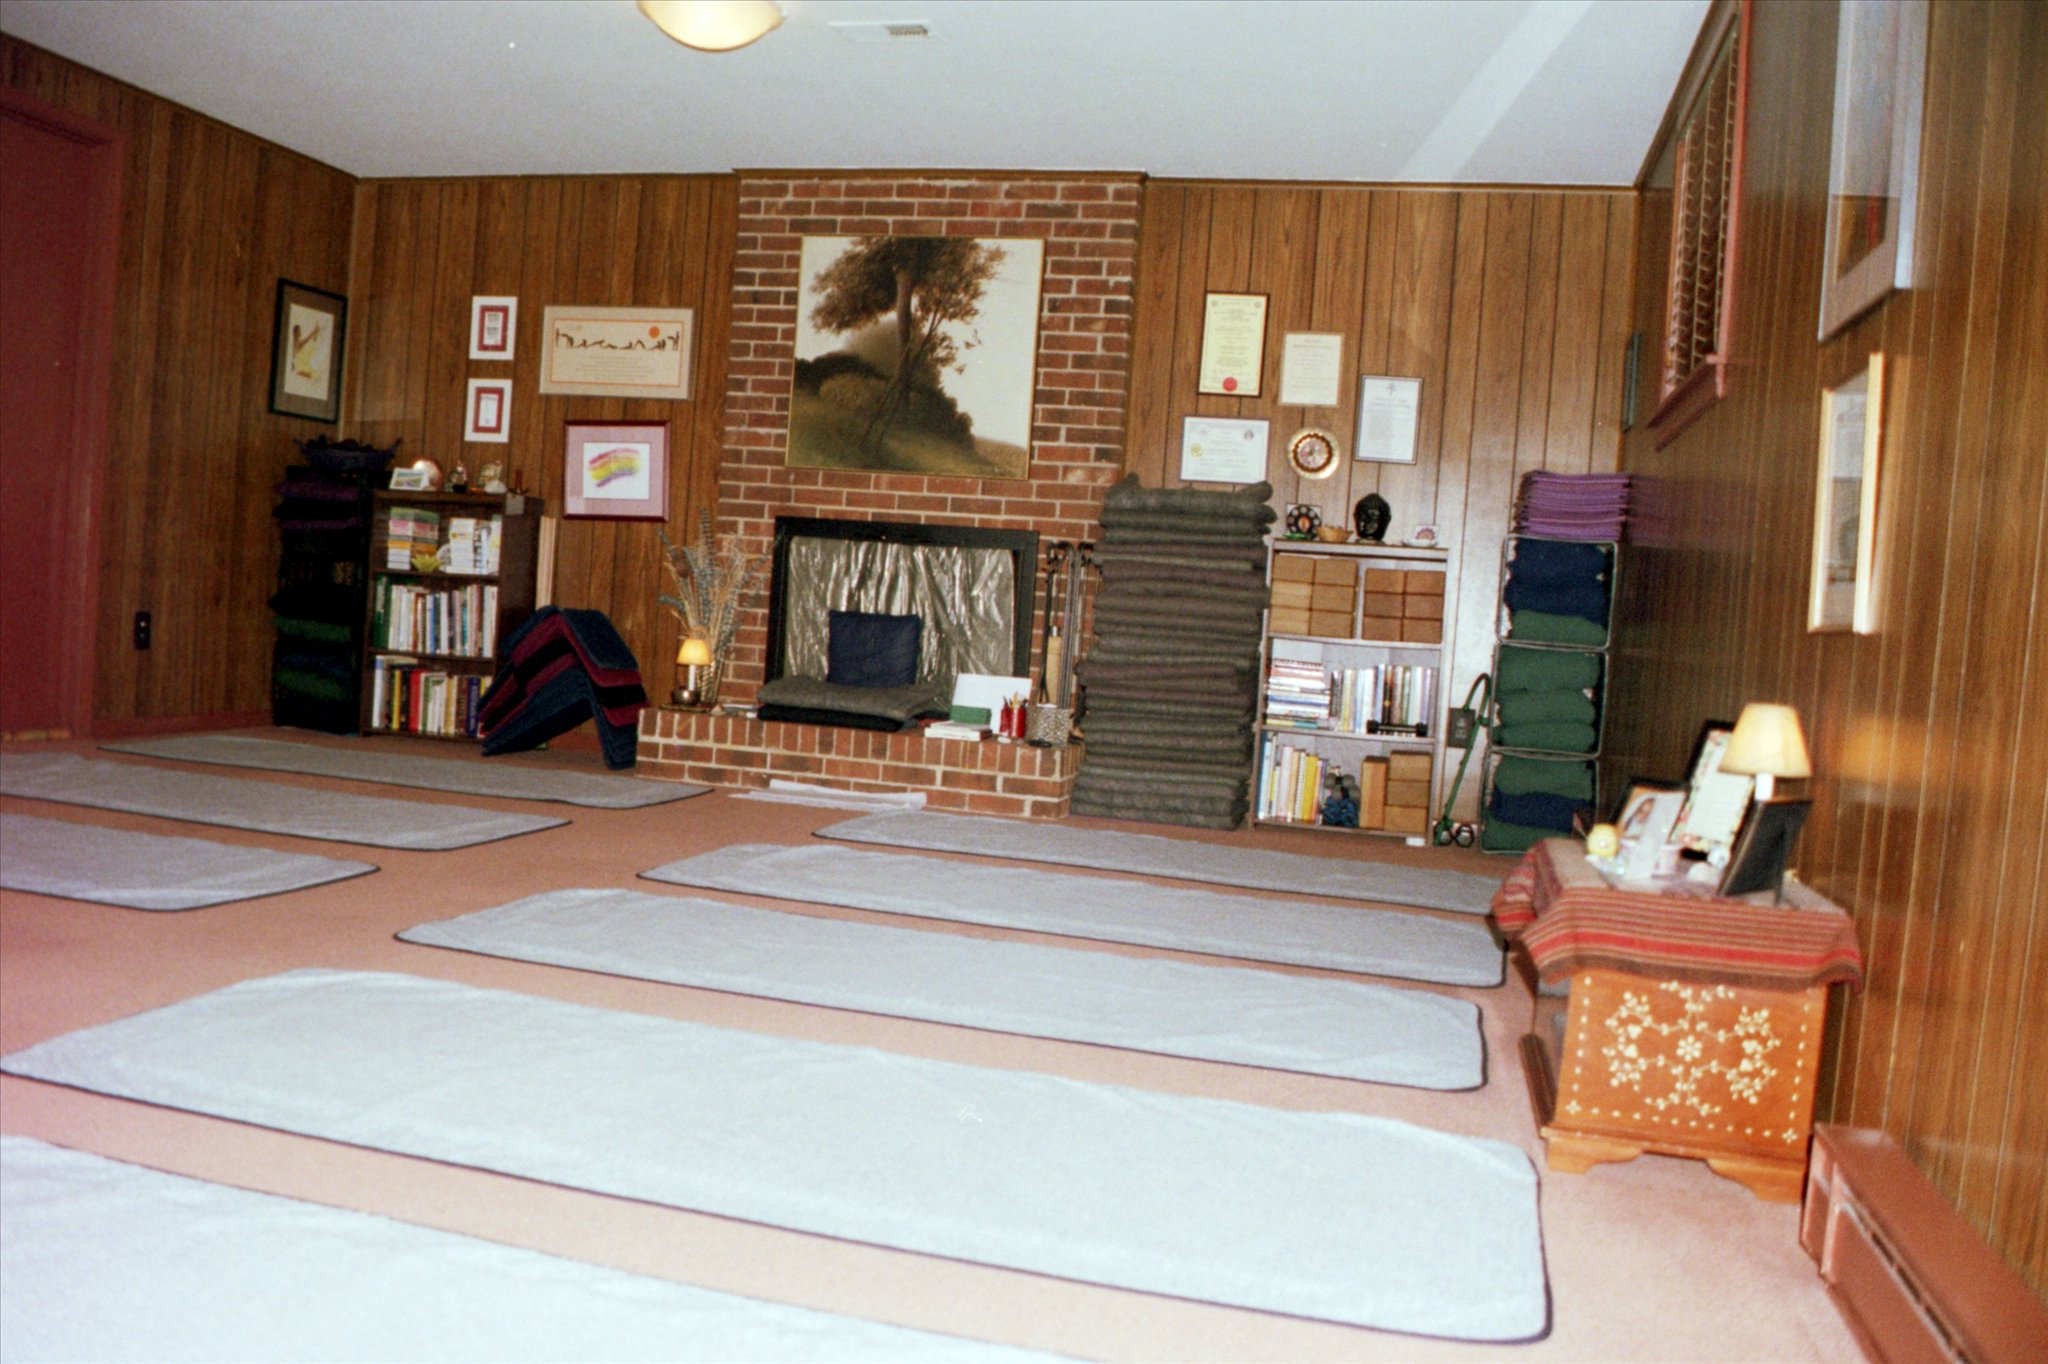 Wider view of the studio.